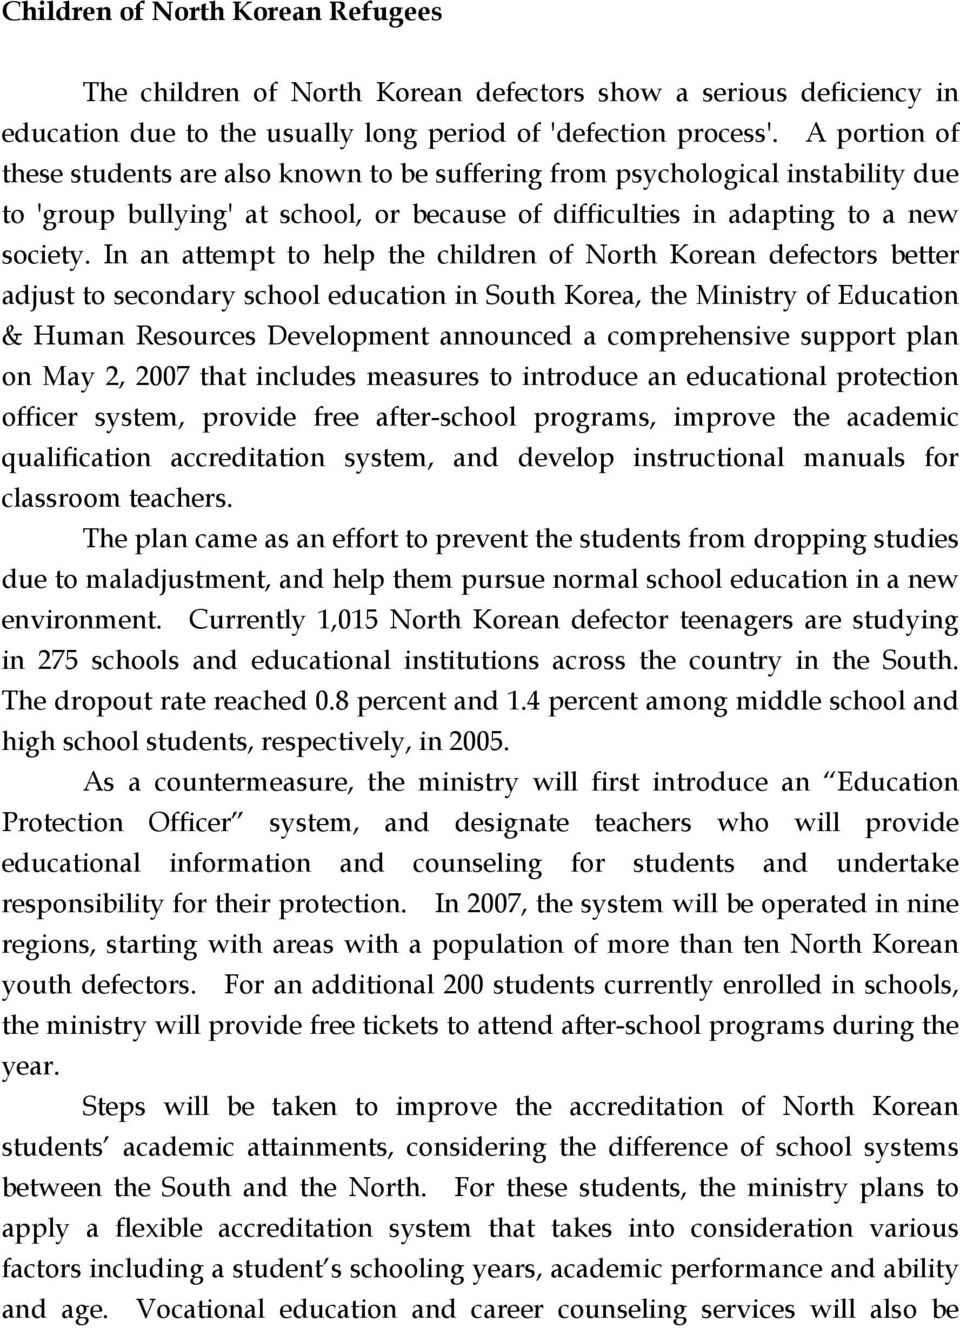 In an attempt to help the children of North Korean defectors better adjust to secondary school education in South Korea, the Ministry of Education & Human Resources Development announced a